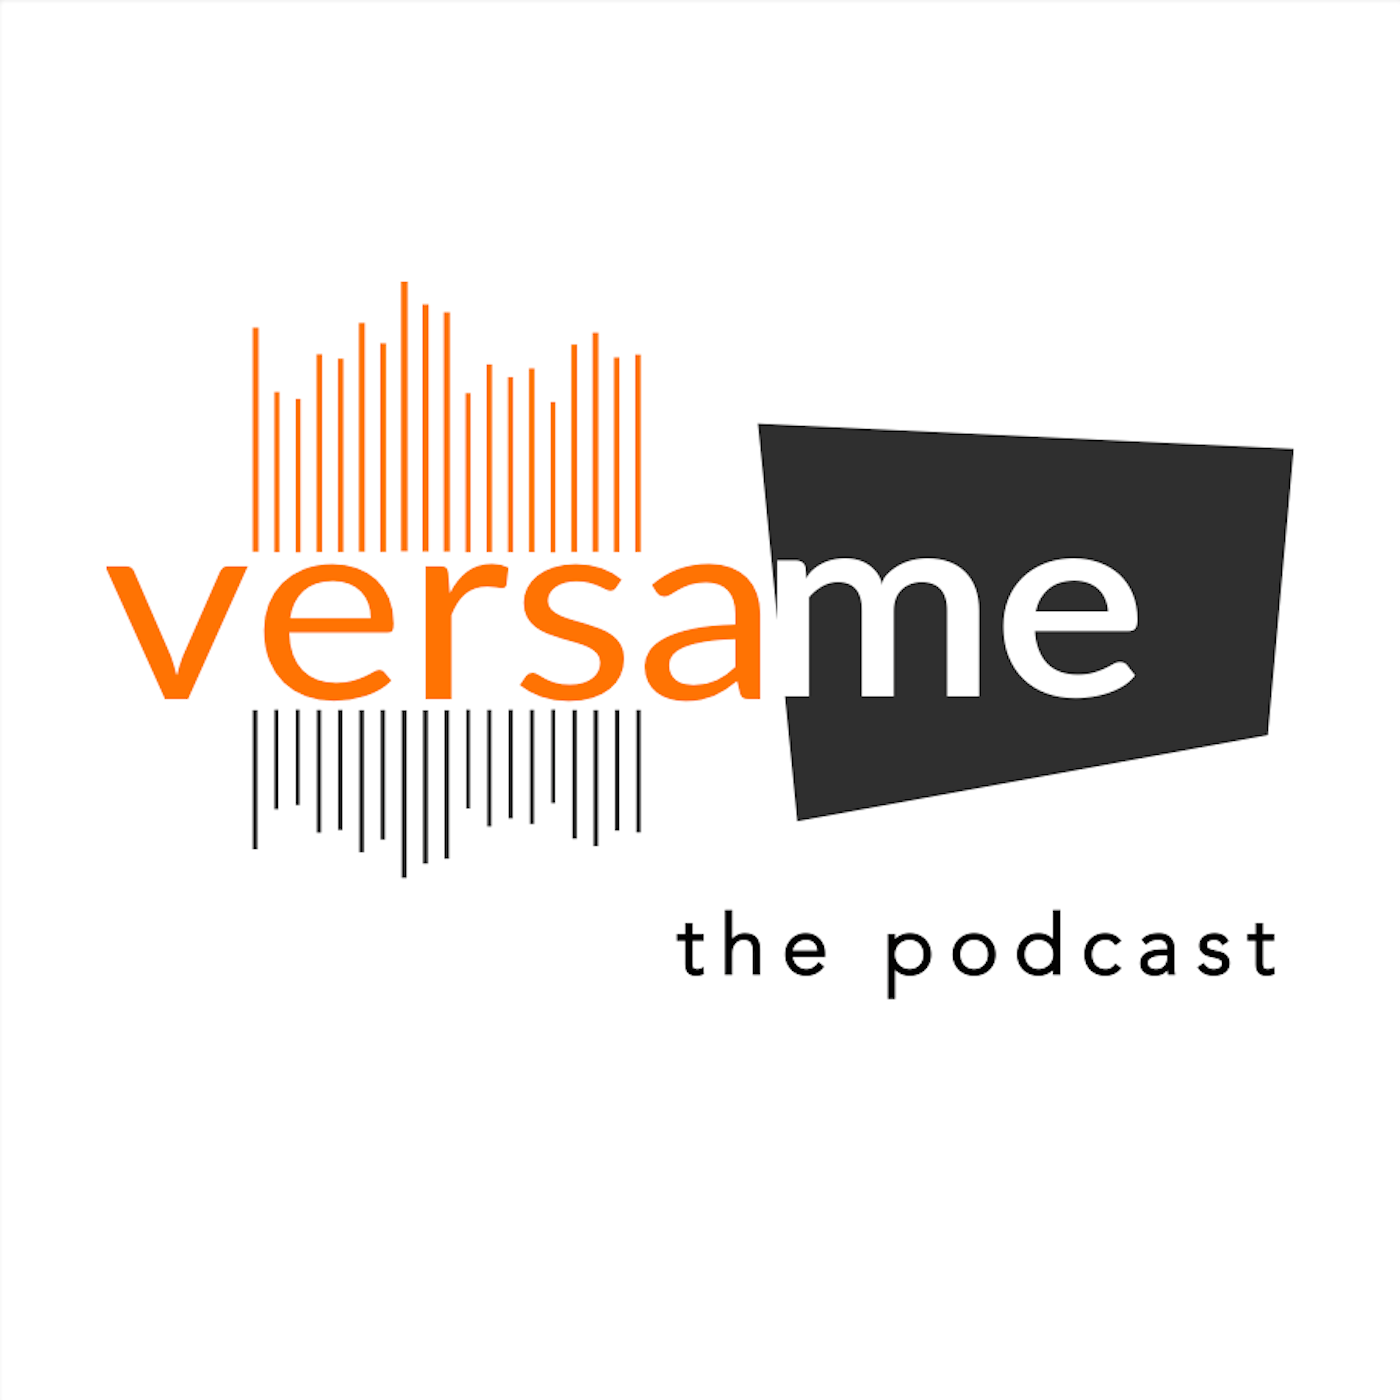 VersaMe: The Podcast